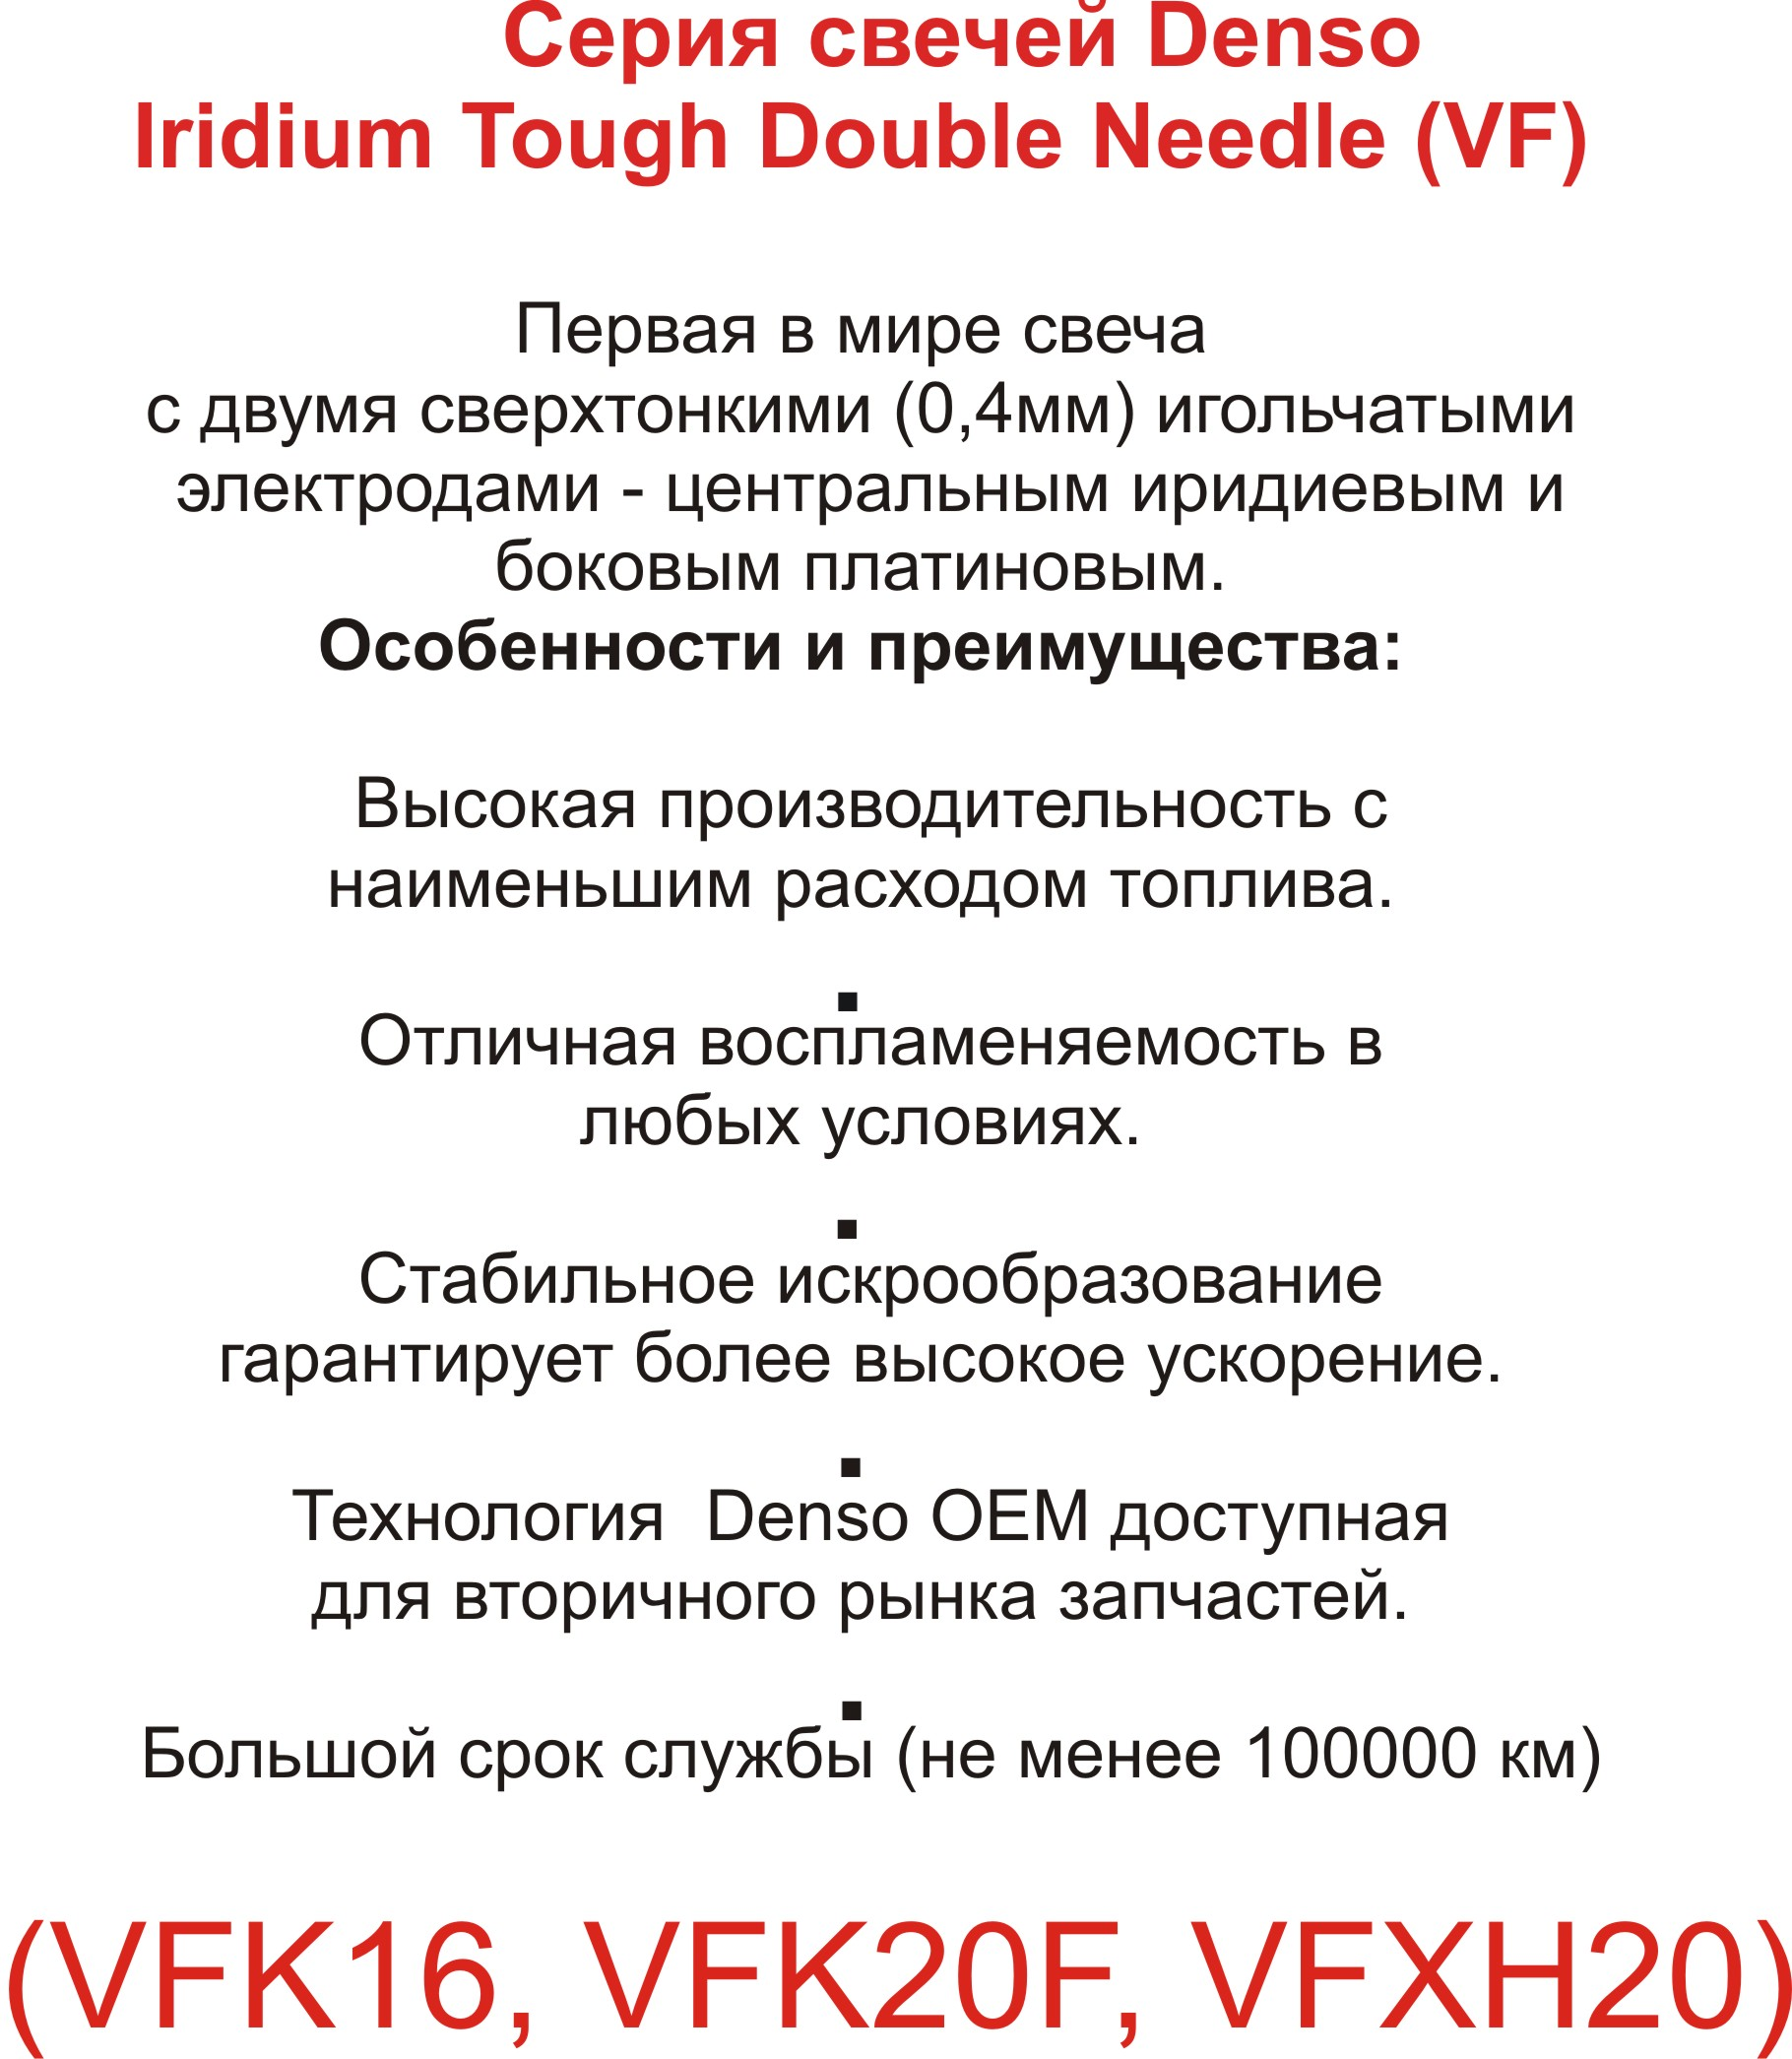 Iridium Tough Double Needle.jpg